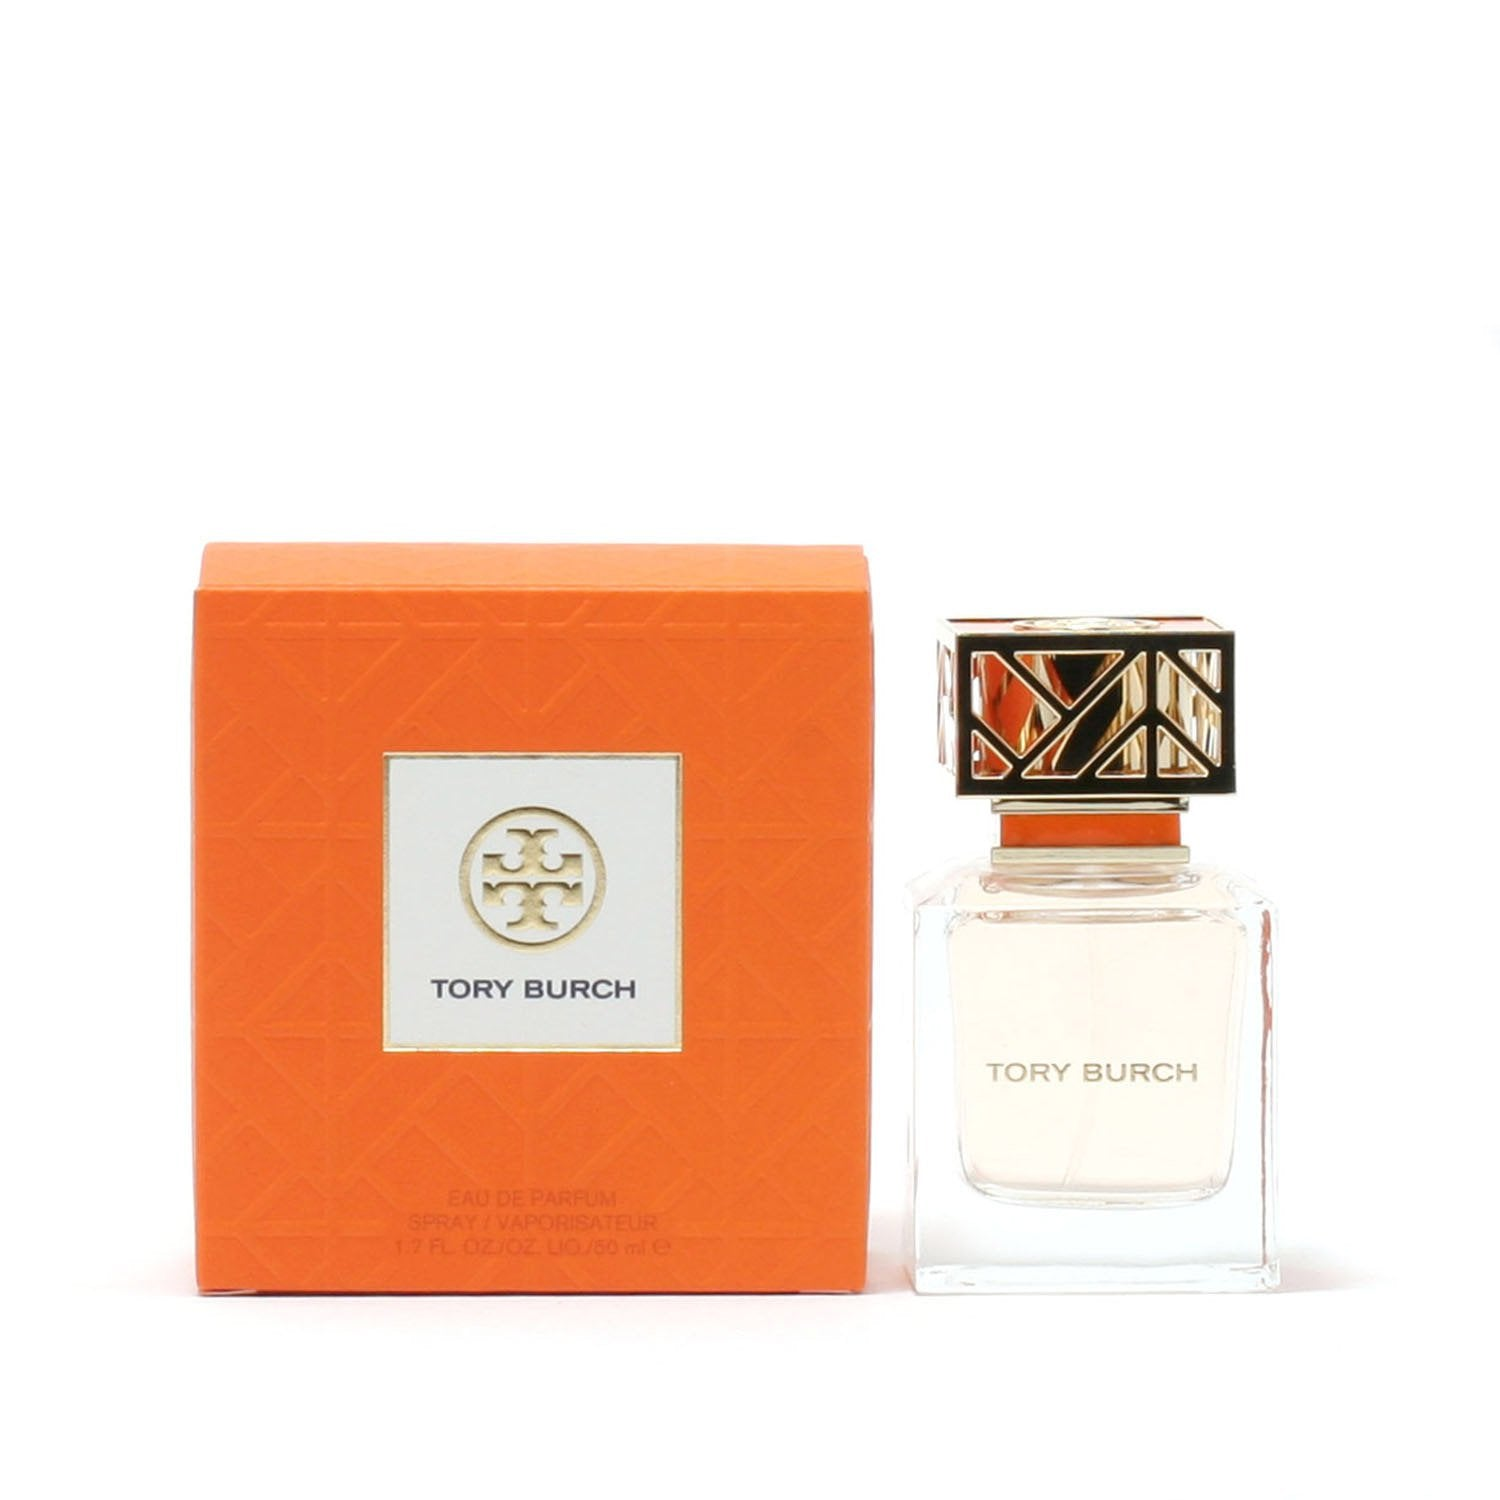 Perfume - TORY BURCH FOR WOMEN - EAU DE PARFUM SPRAY